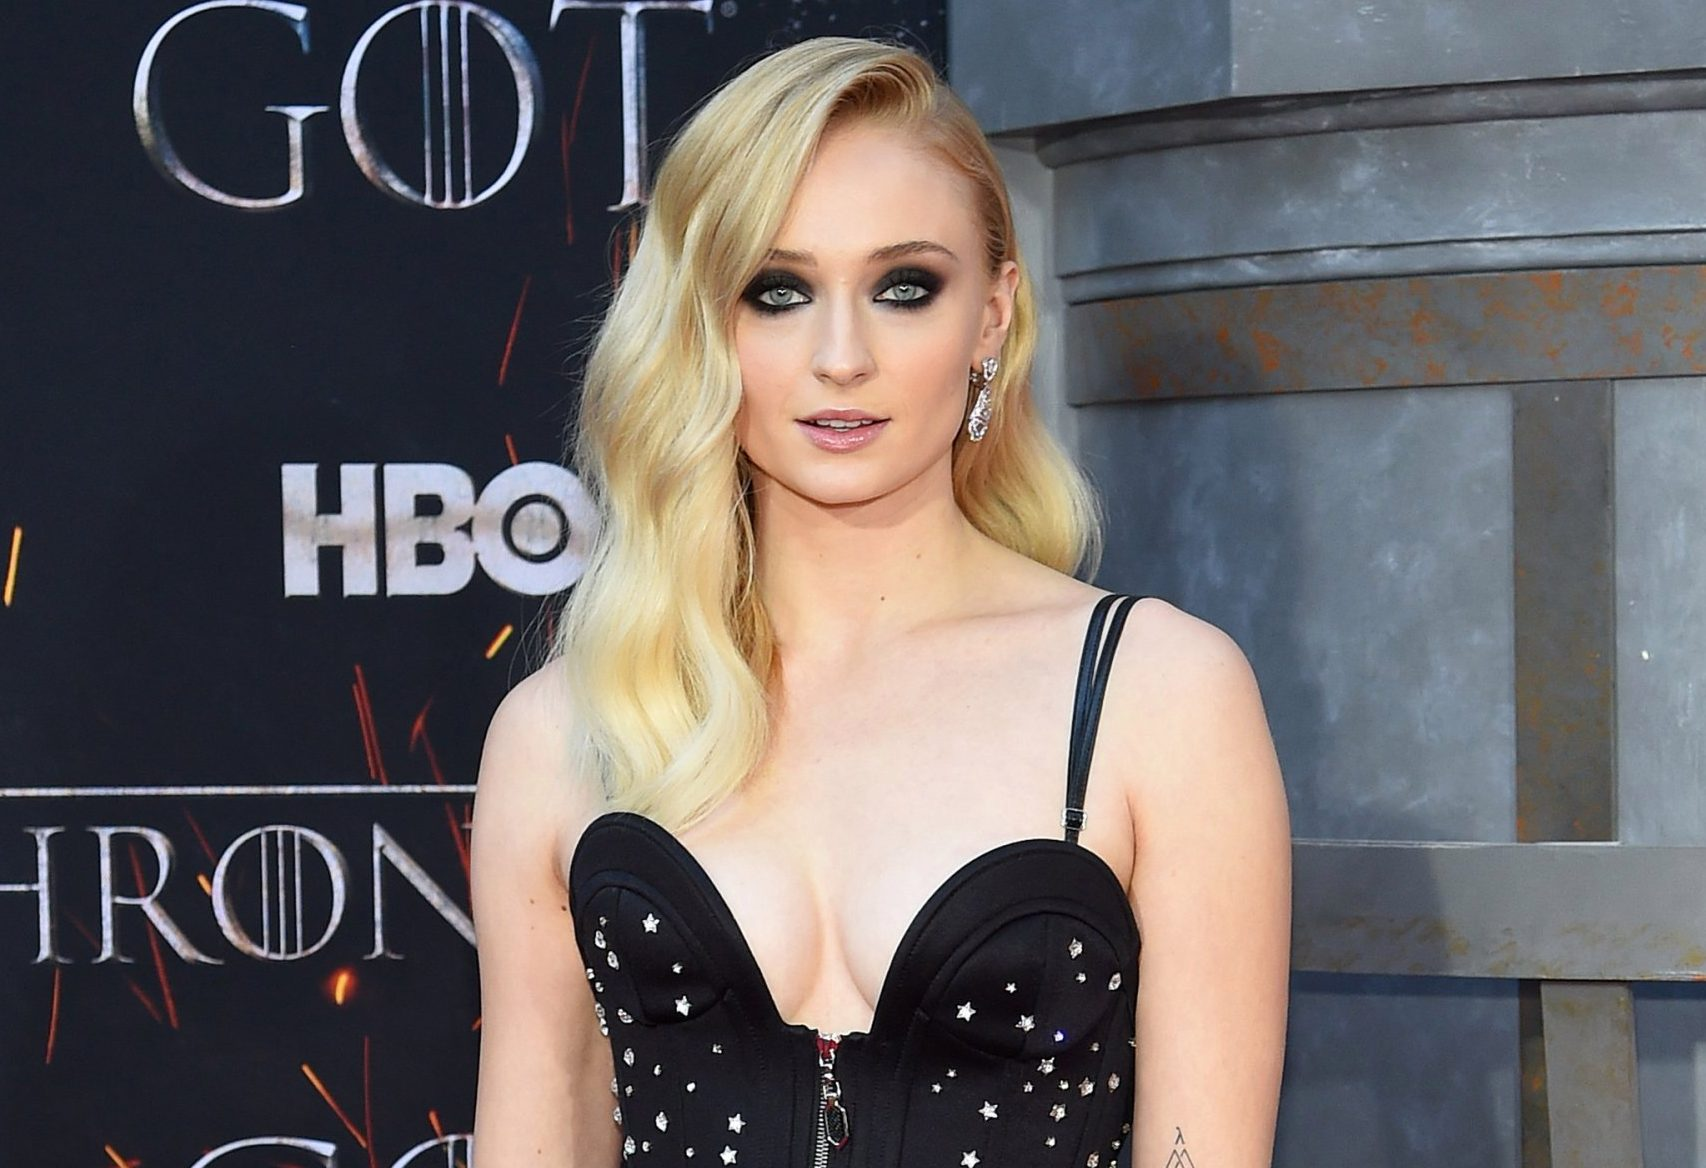 Sophie Turner 'used to think about suicide', as she addresses early Game Of Thrones criticism